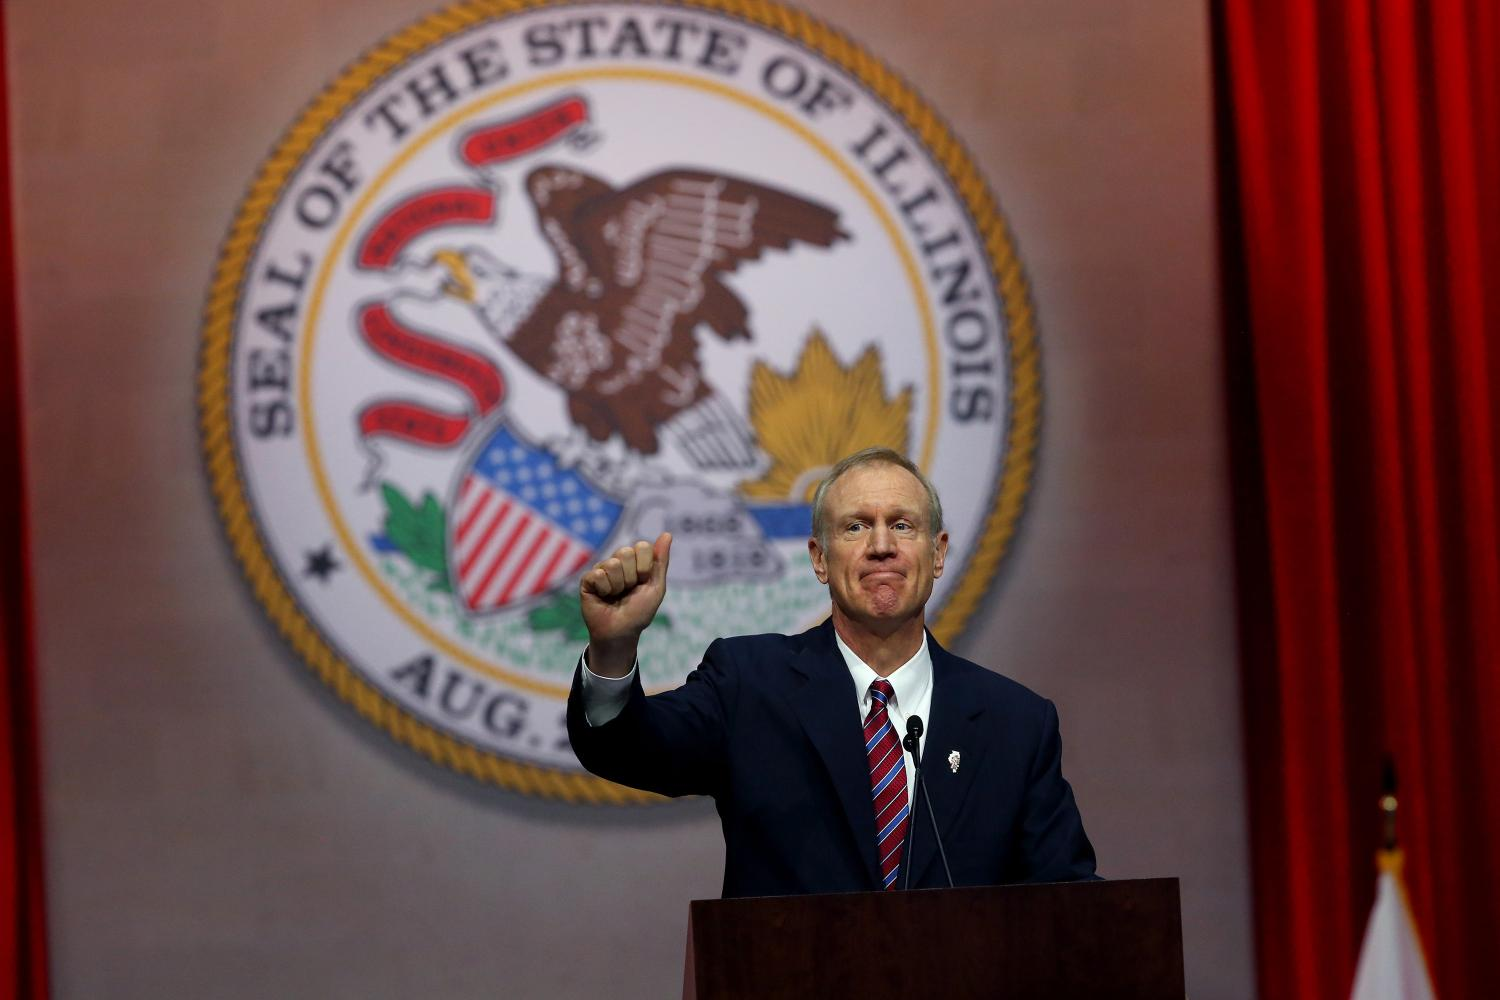 Gov. Bruce Rauner gives a thumbs up after his first speech as governor on Jan. 12, 2015, at the Prairie Capital Convention Center in Springfield, Ill. Rauner said he is not sure whether he will veto an abortion bill, and his indecision has made state Democrats hopeful.